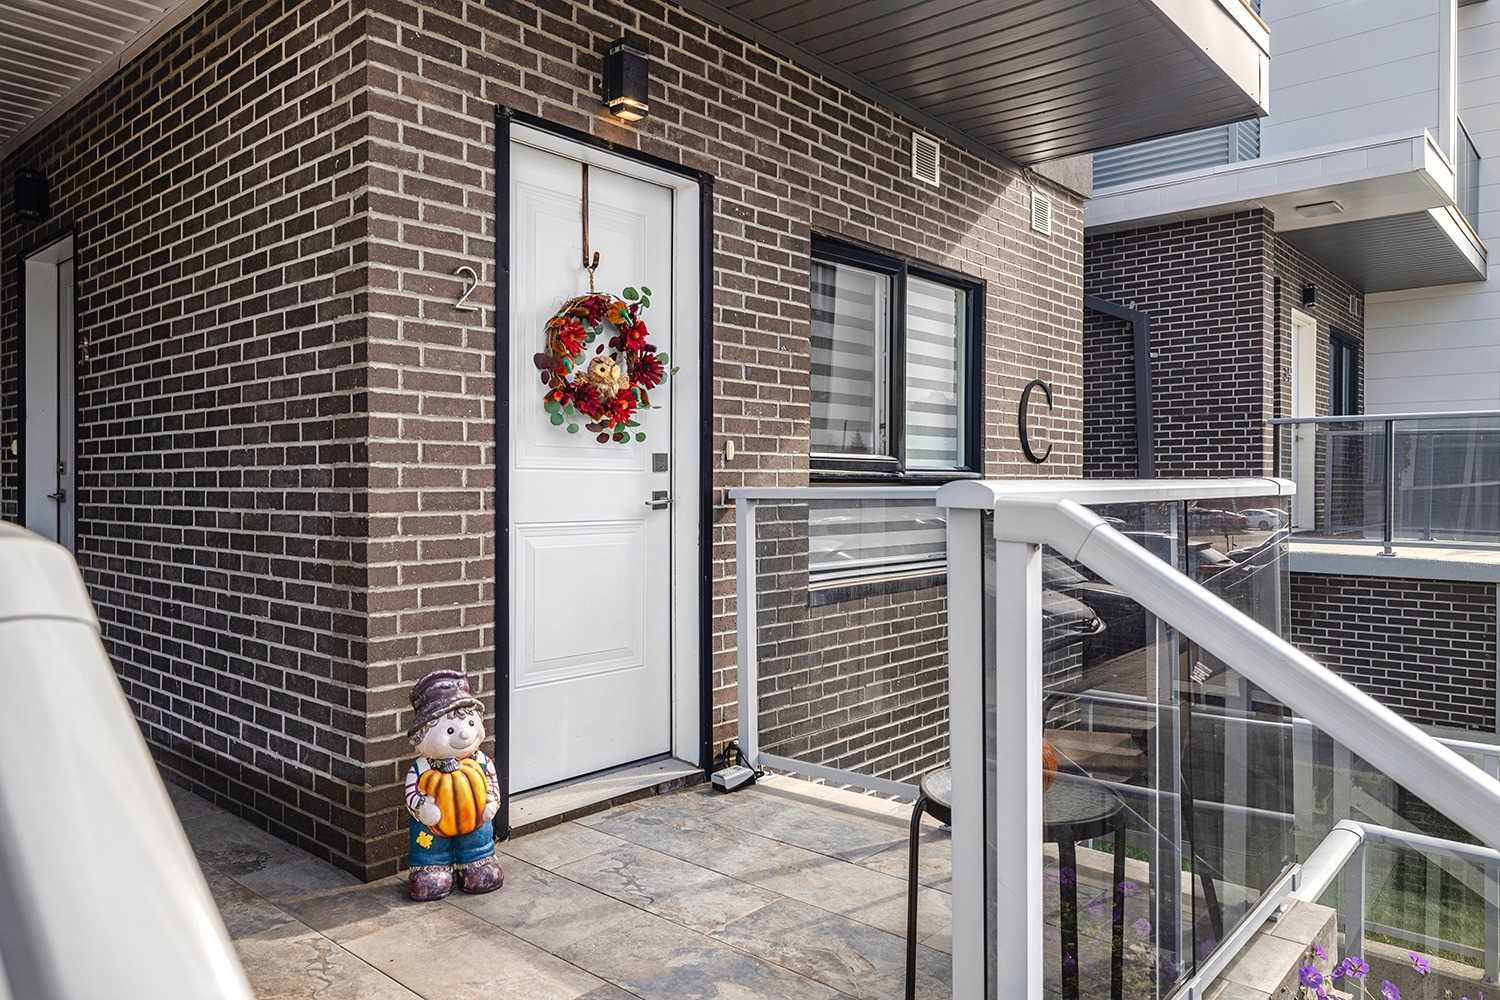 Condo Townhouse for sale In Kitchener